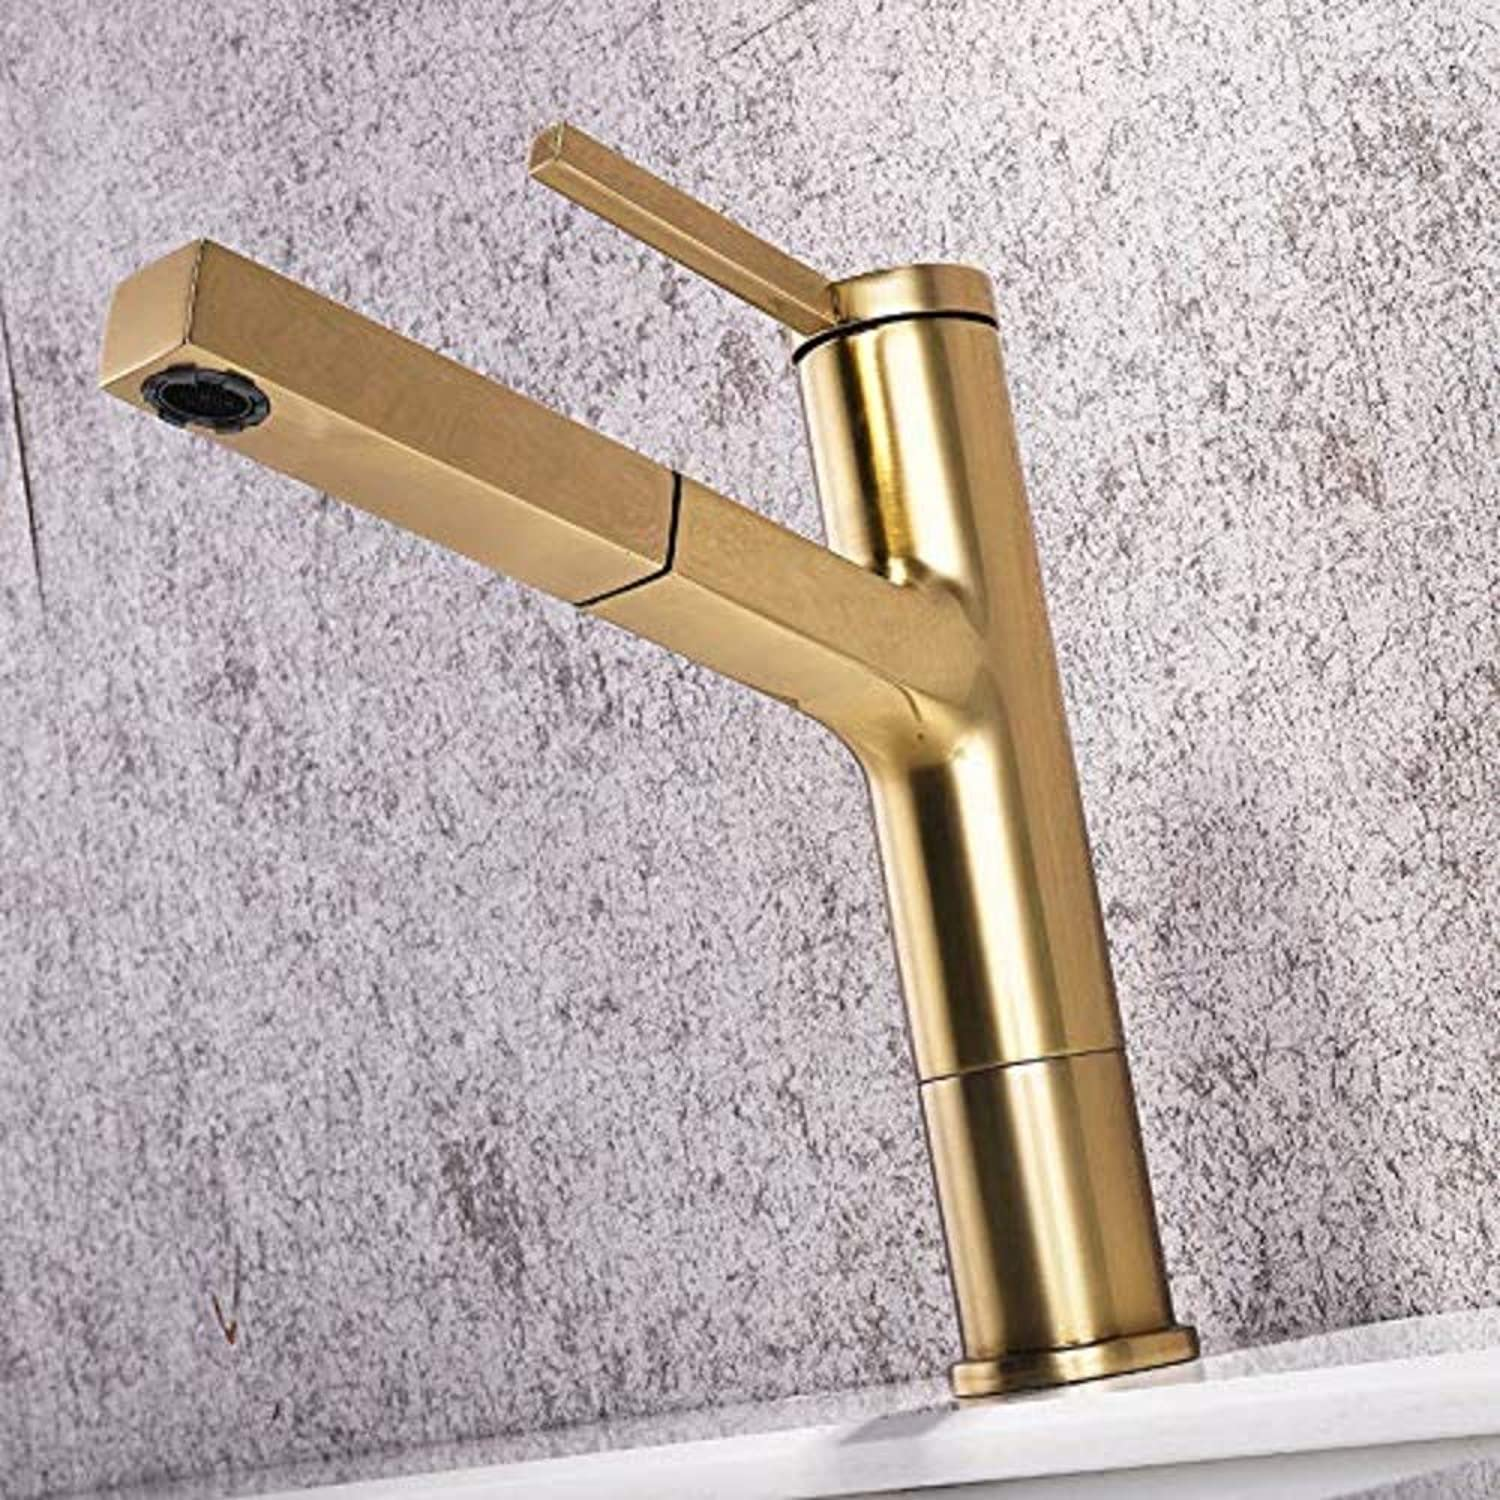 Basin Taps Swivel Spout Faucet Bathroom Faucet Drawing Type Antique Cold and Hot Water Basin redary Table Basin Faucet